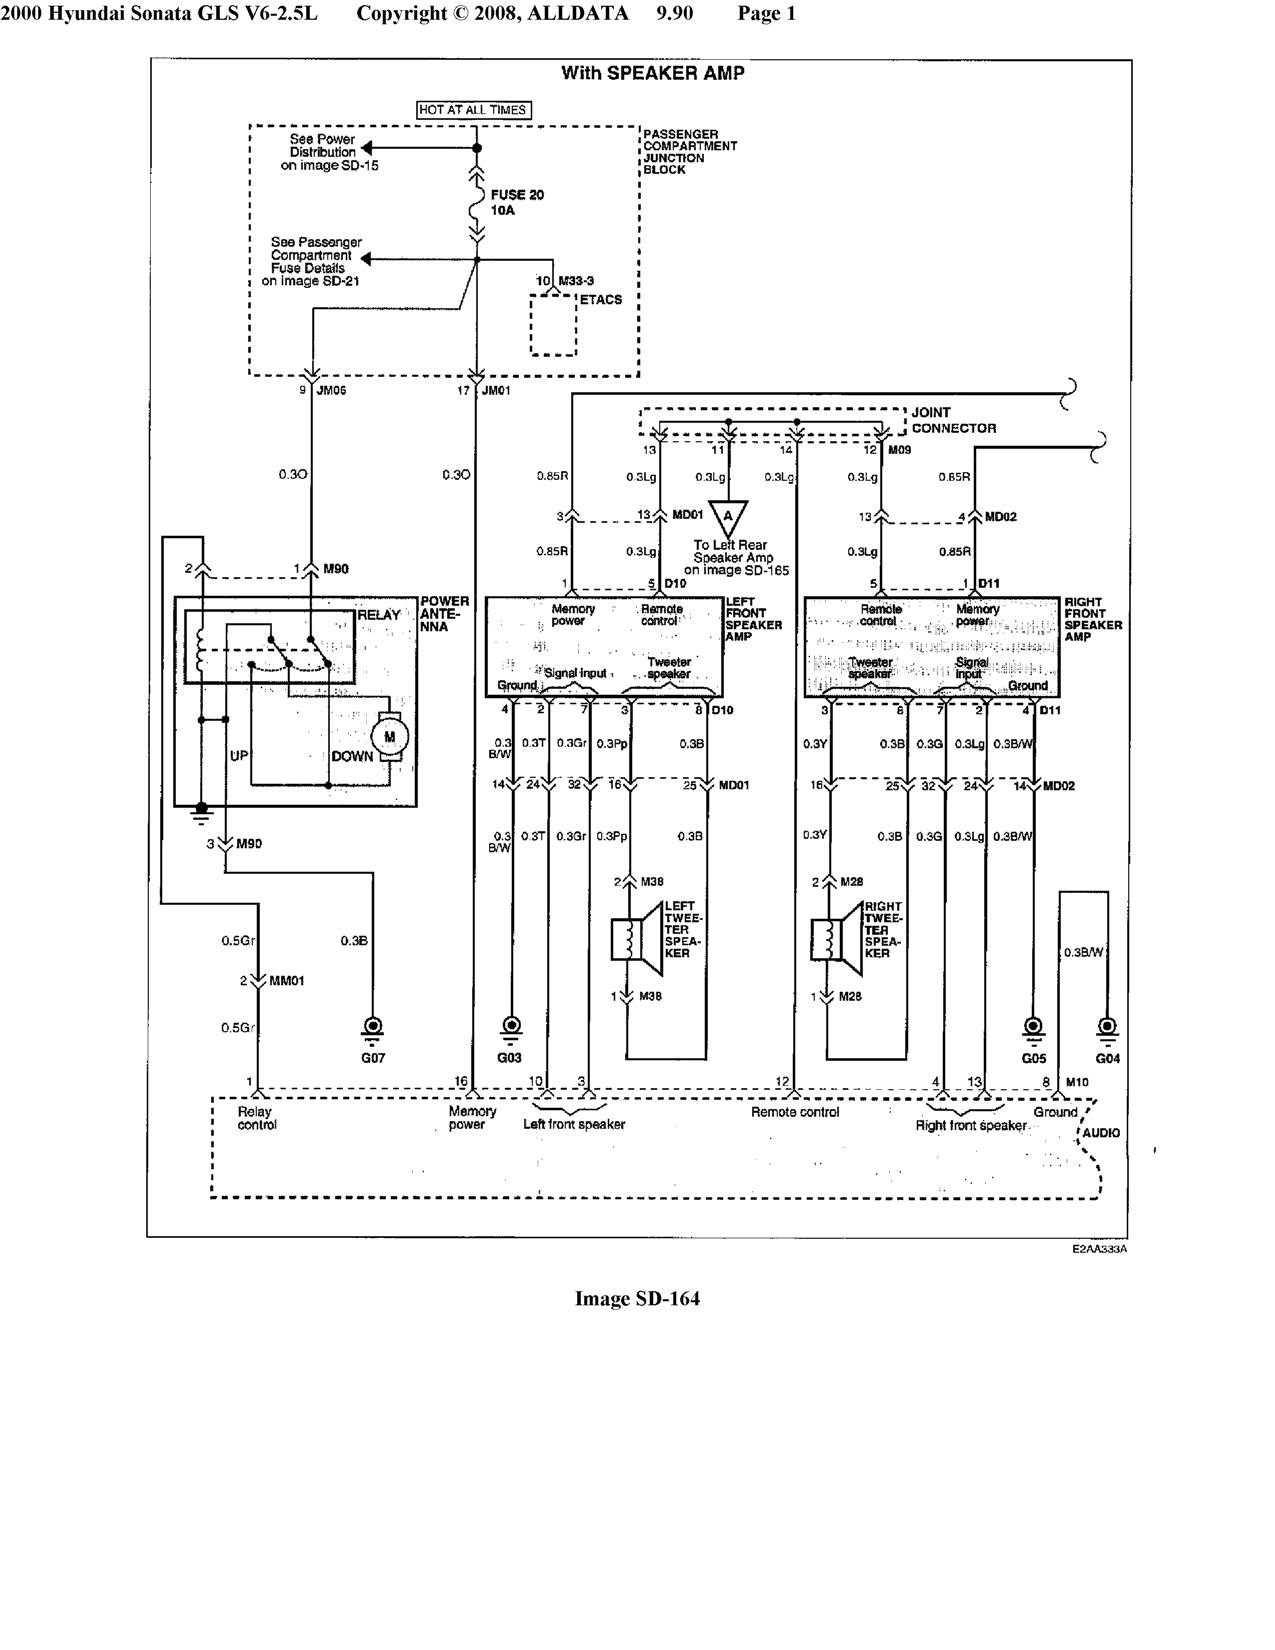 hyundai lantra wiring diagram automotive block diagram u2022 rh carwiringdiagram today hyundai elantra stereo wiring diagram hyundai elantra stereo wiring diagram